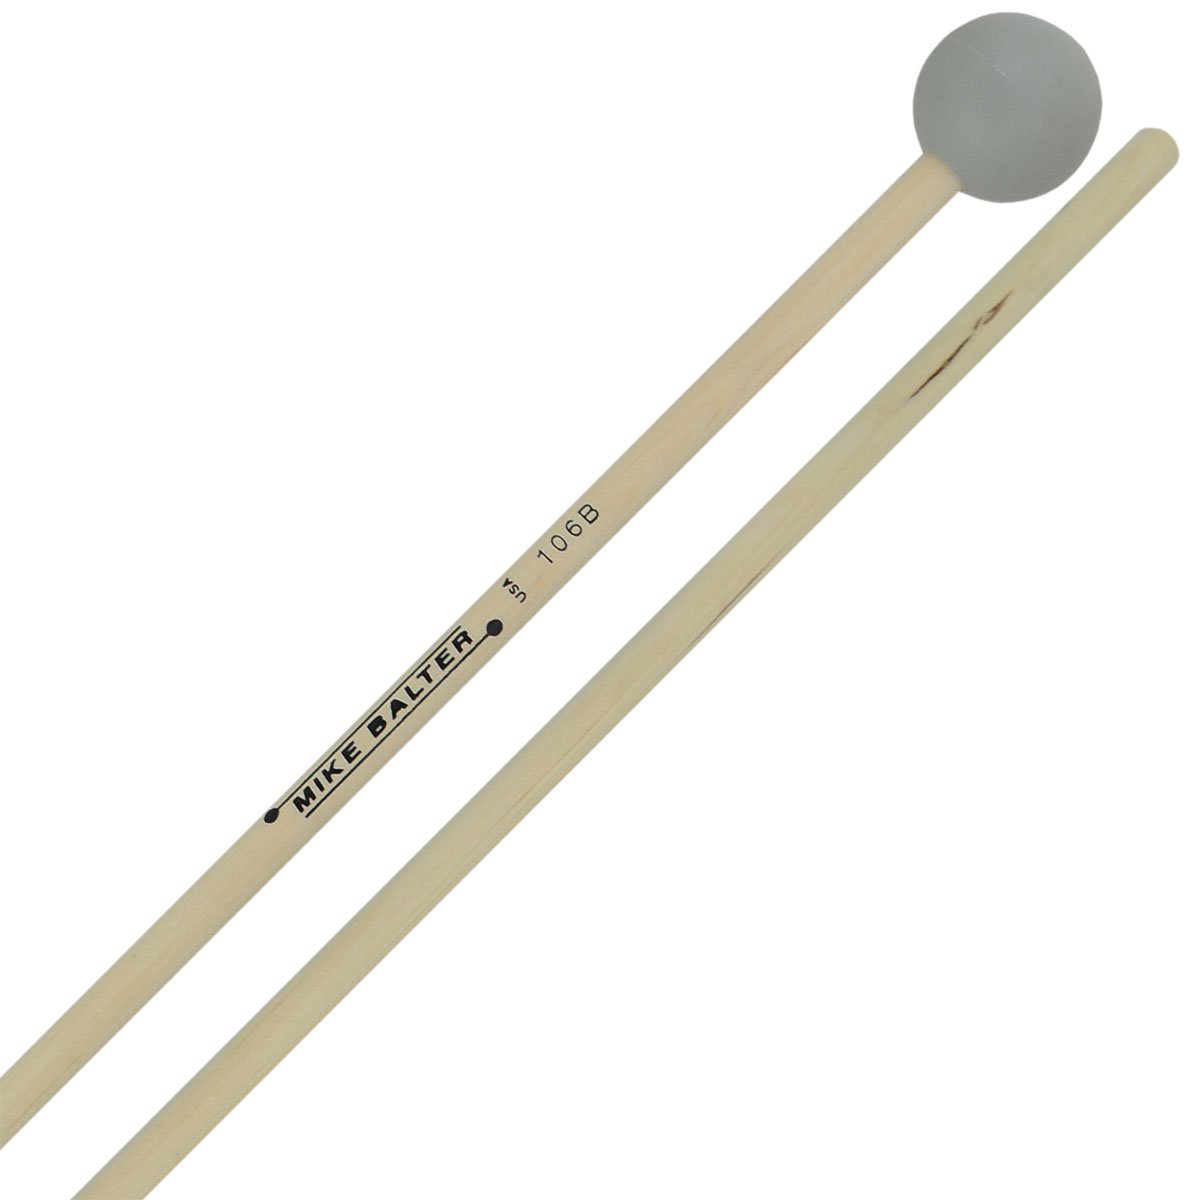 Mike Balter Grandioso Unwound Hard Rubber Xylophone Mallets with Birch Handles